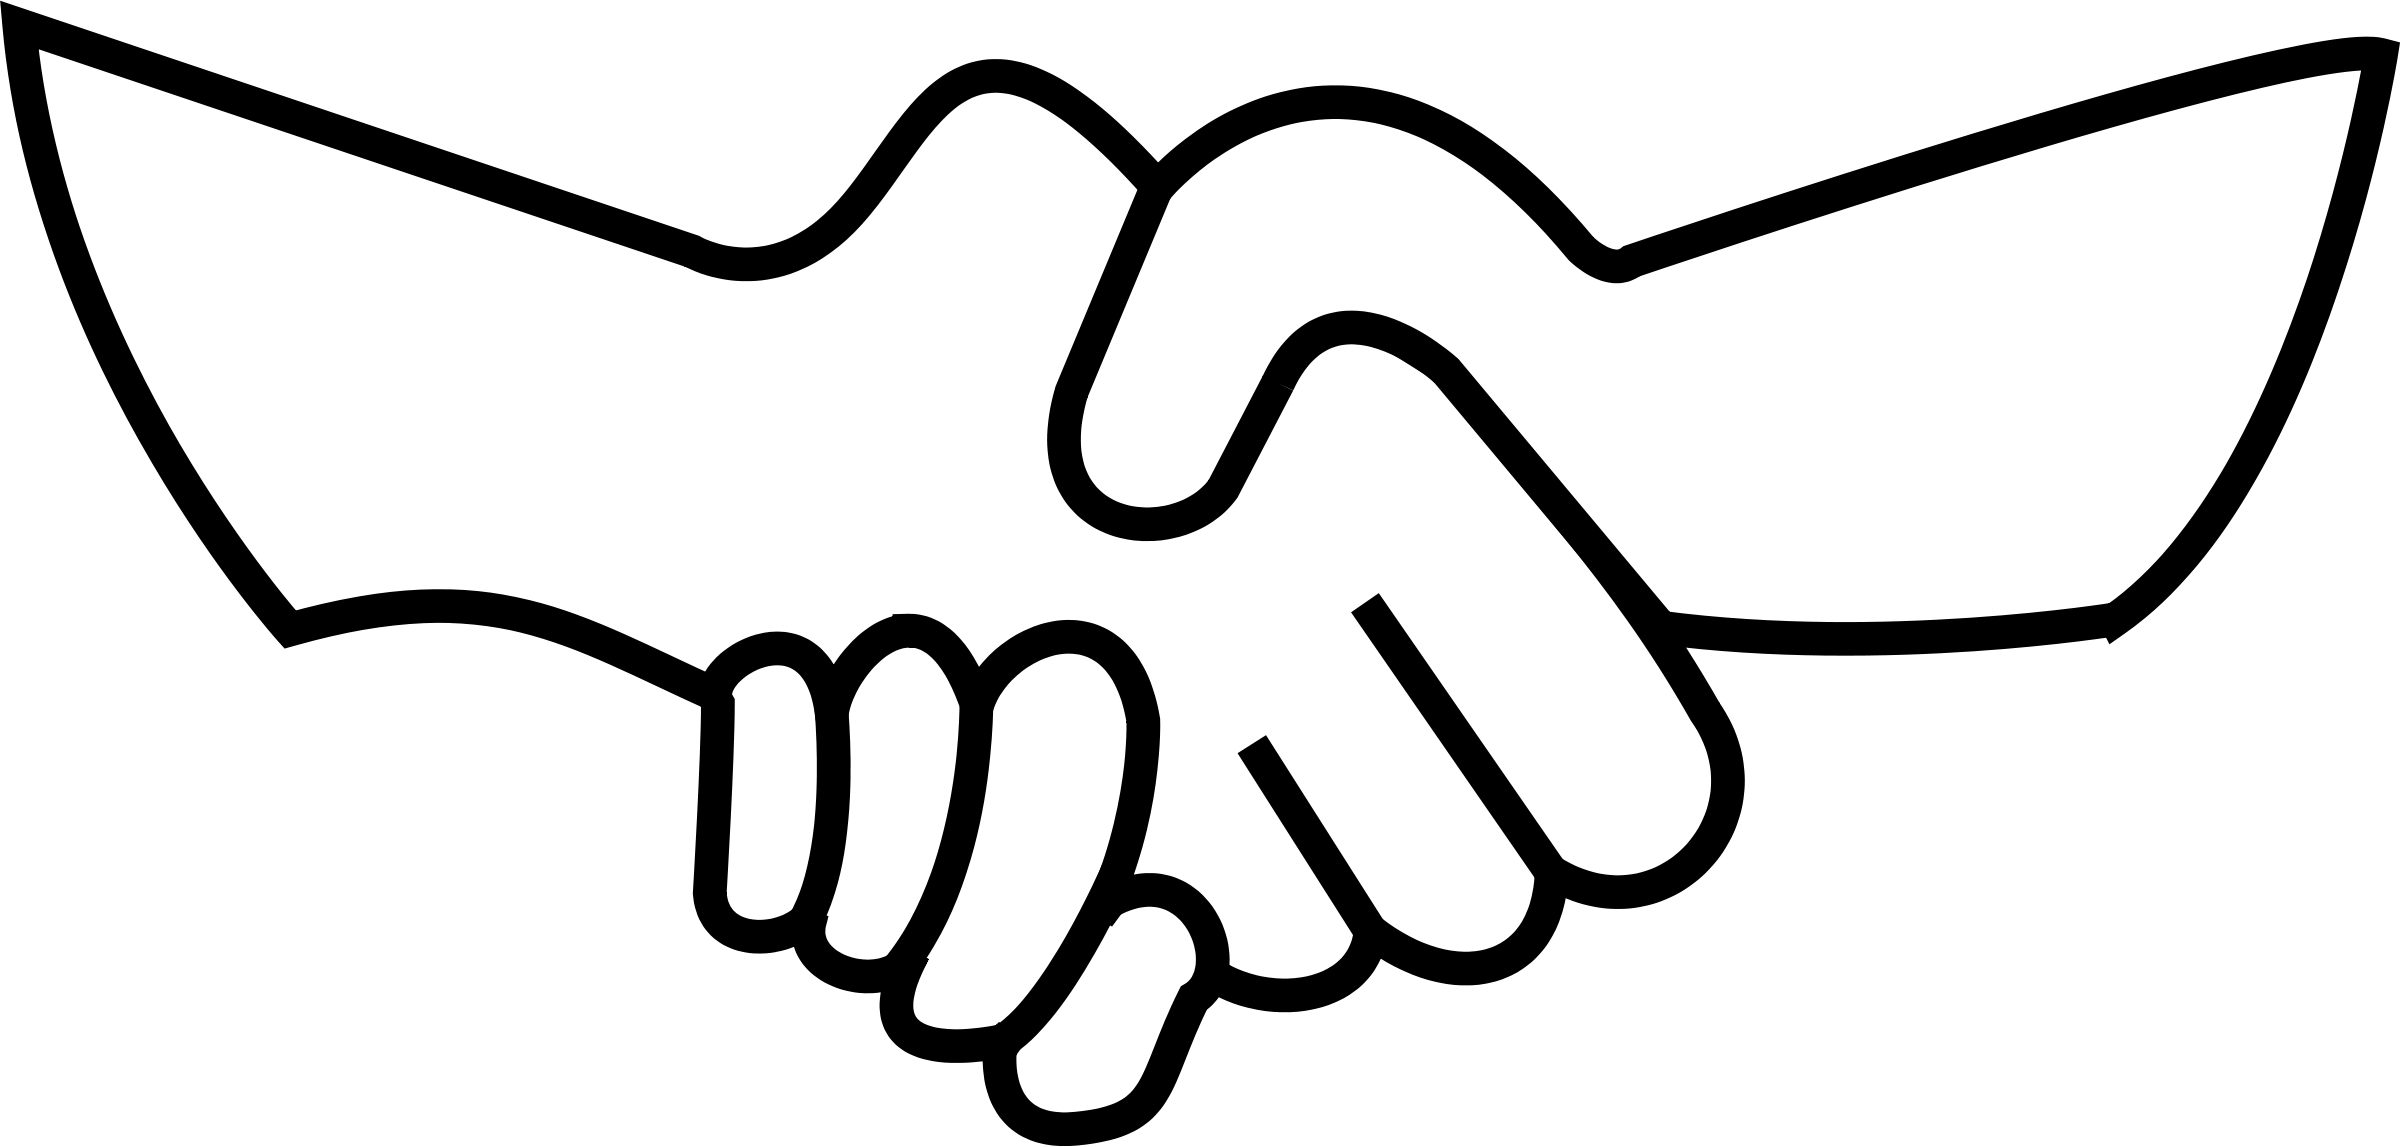 Helping hand silhouette at. Handshake clipart brotherhood